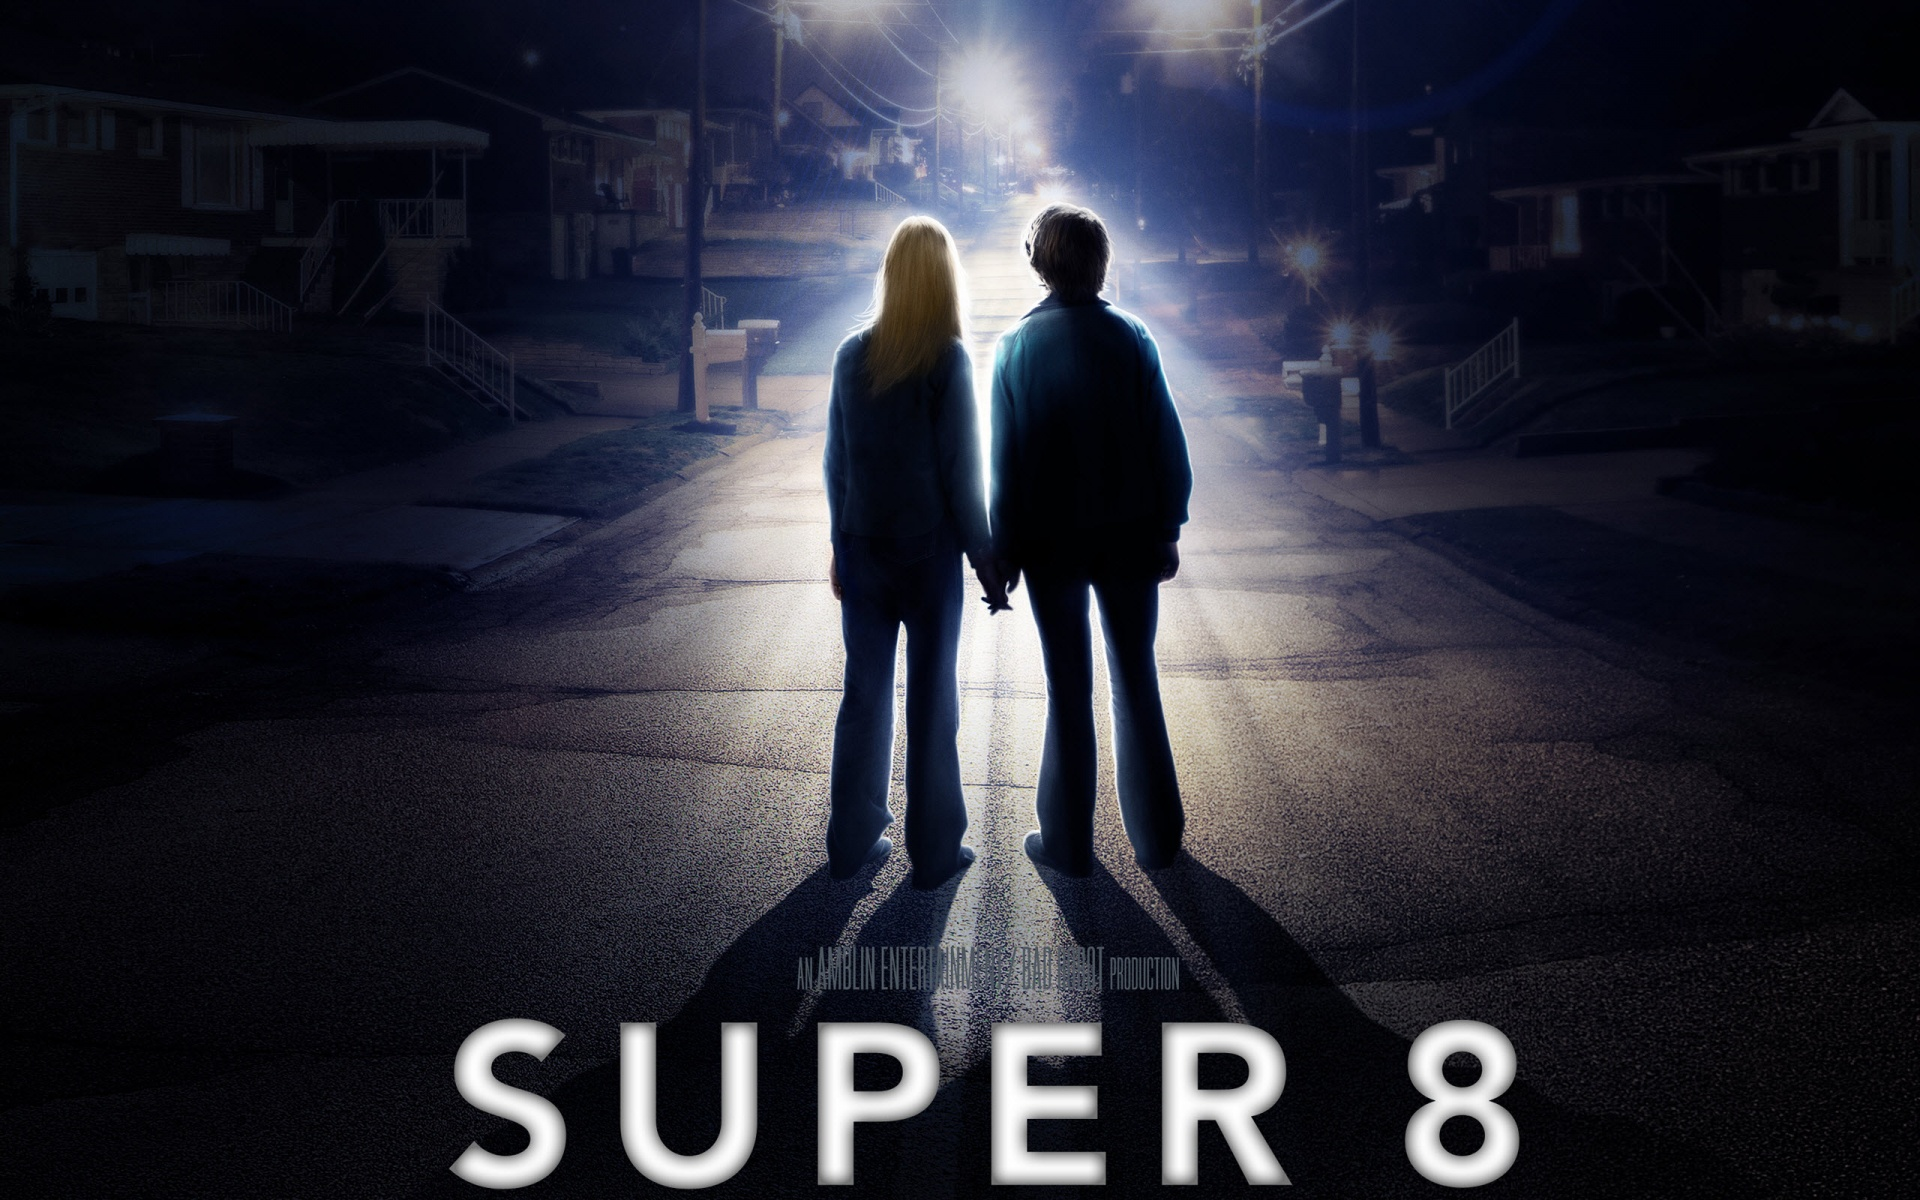 Background on the new sci-fi movie Super 8 from JJ